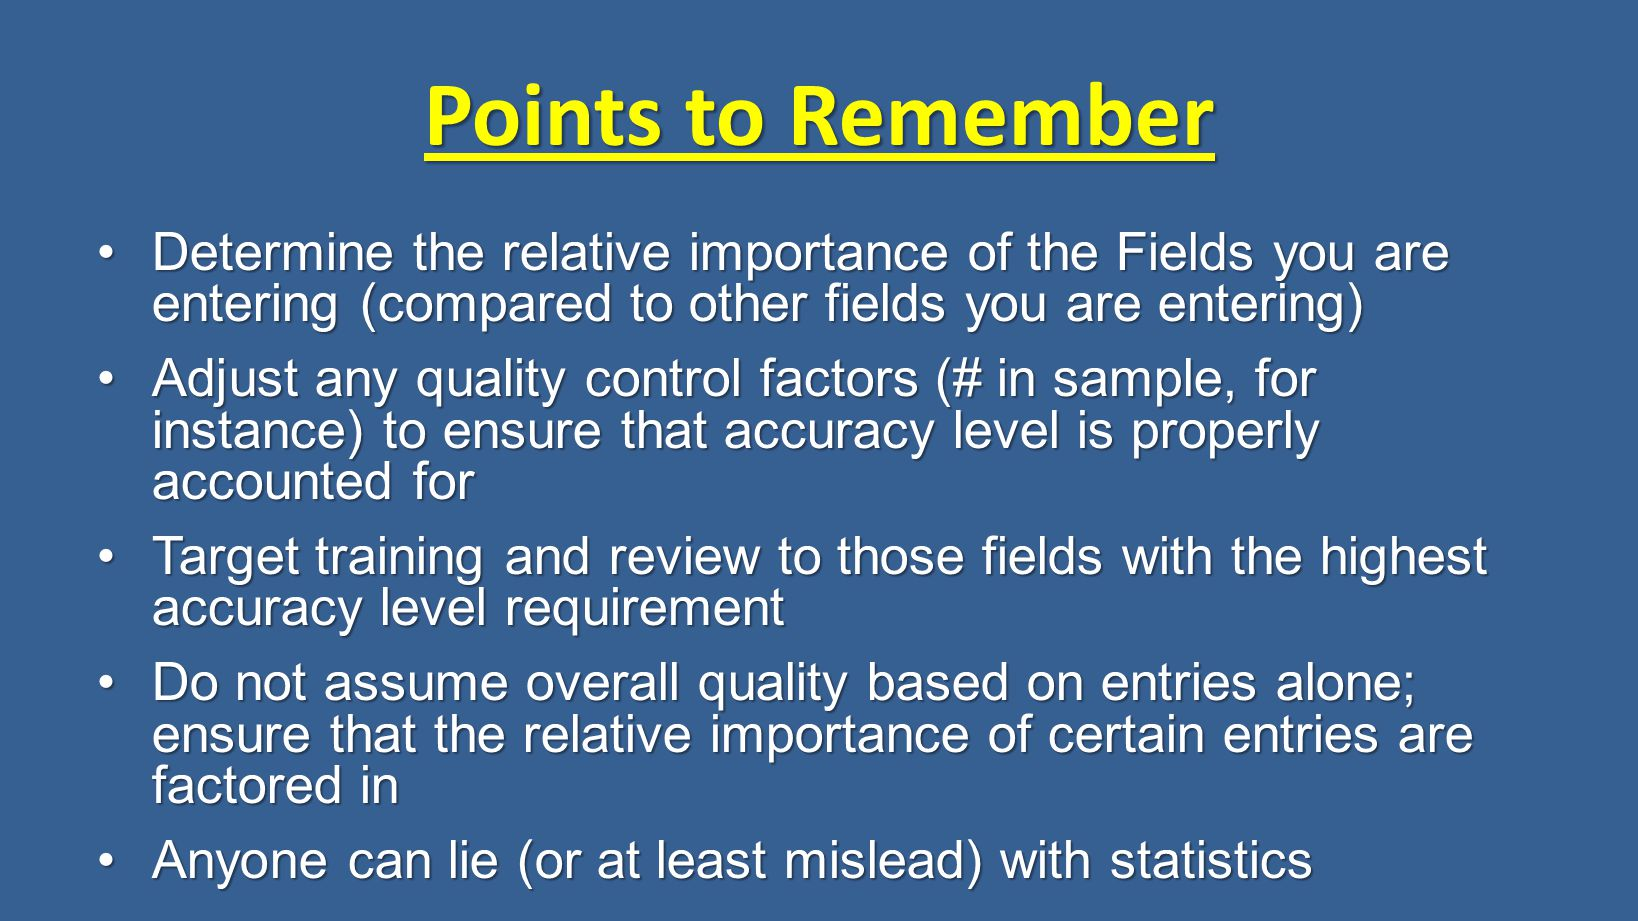 Points to Remember Determine the relative importance of the Fields you are entering (compared to other fields you are entering)Determine the relative importance of the Fields you are entering (compared to other fields you are entering) Adjust any quality control factors (# in sample, for instance) to ensure that accuracy level is properly accounted forAdjust any quality control factors (# in sample, for instance) to ensure that accuracy level is properly accounted for Target training and review to those fields with the highest accuracy level requirementTarget training and review to those fields with the highest accuracy level requirement Do not assume overall quality based on entries alone; ensure that the relative importance of certain entries are factored inDo not assume overall quality based on entries alone; ensure that the relative importance of certain entries are factored in Anyone can lie (or at least mislead) with statisticsAnyone can lie (or at least mislead) with statistics